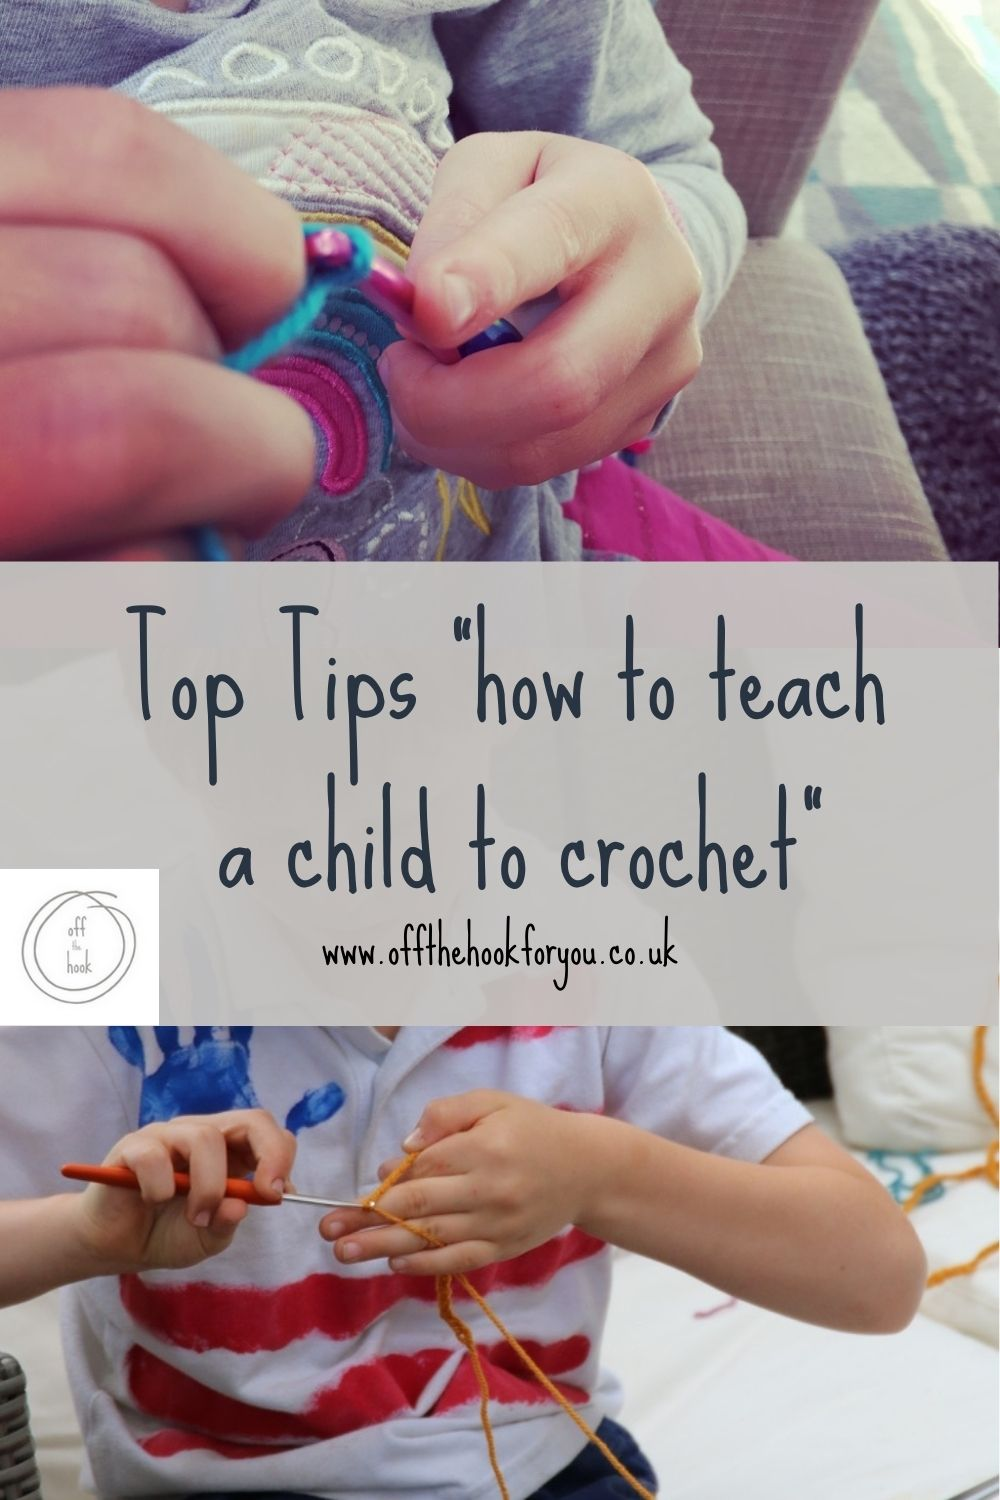 Tips to teach a child to crochet